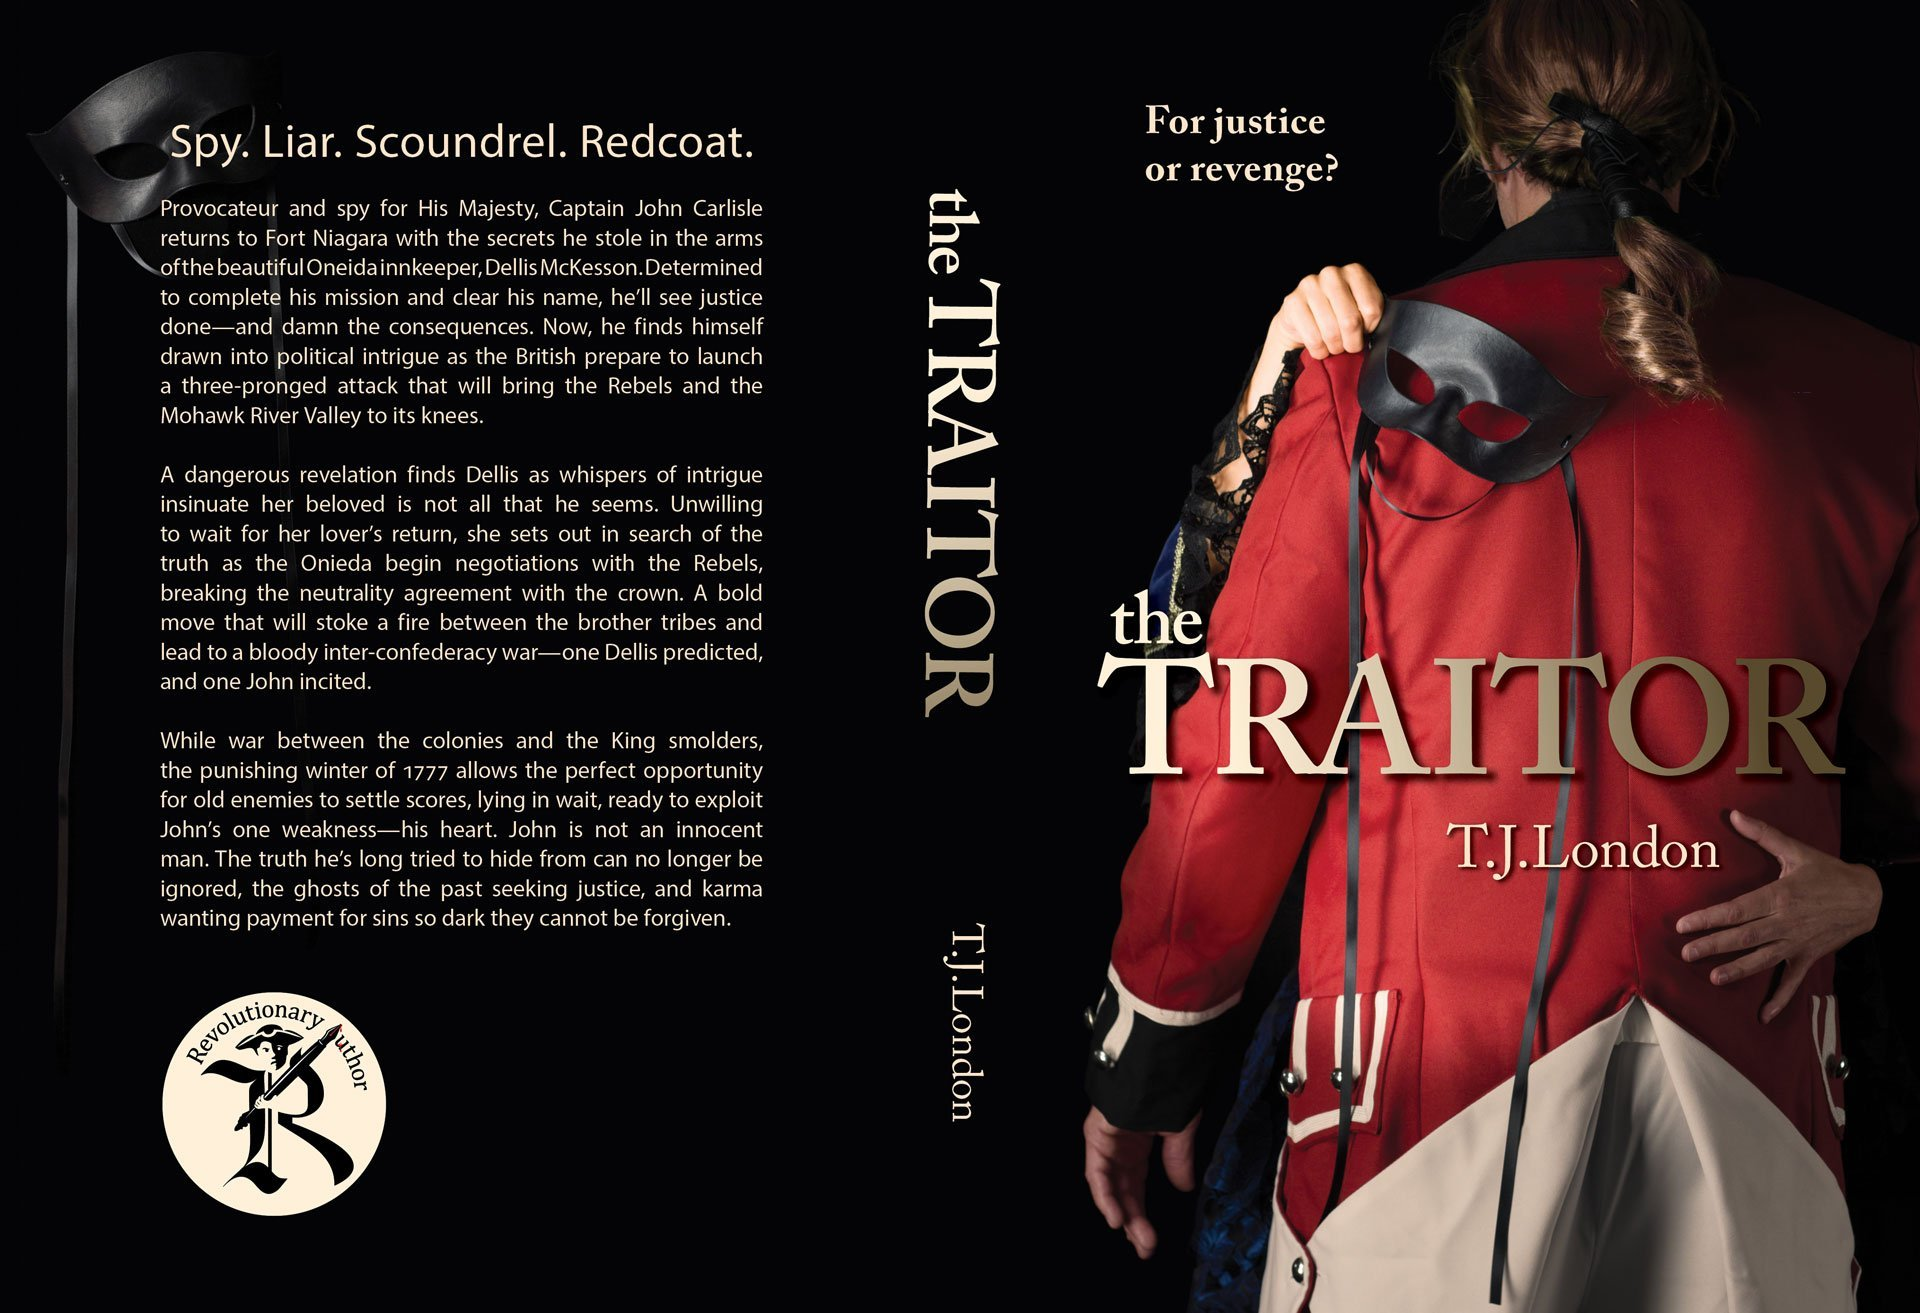 The Traitor - Book Jacket Design